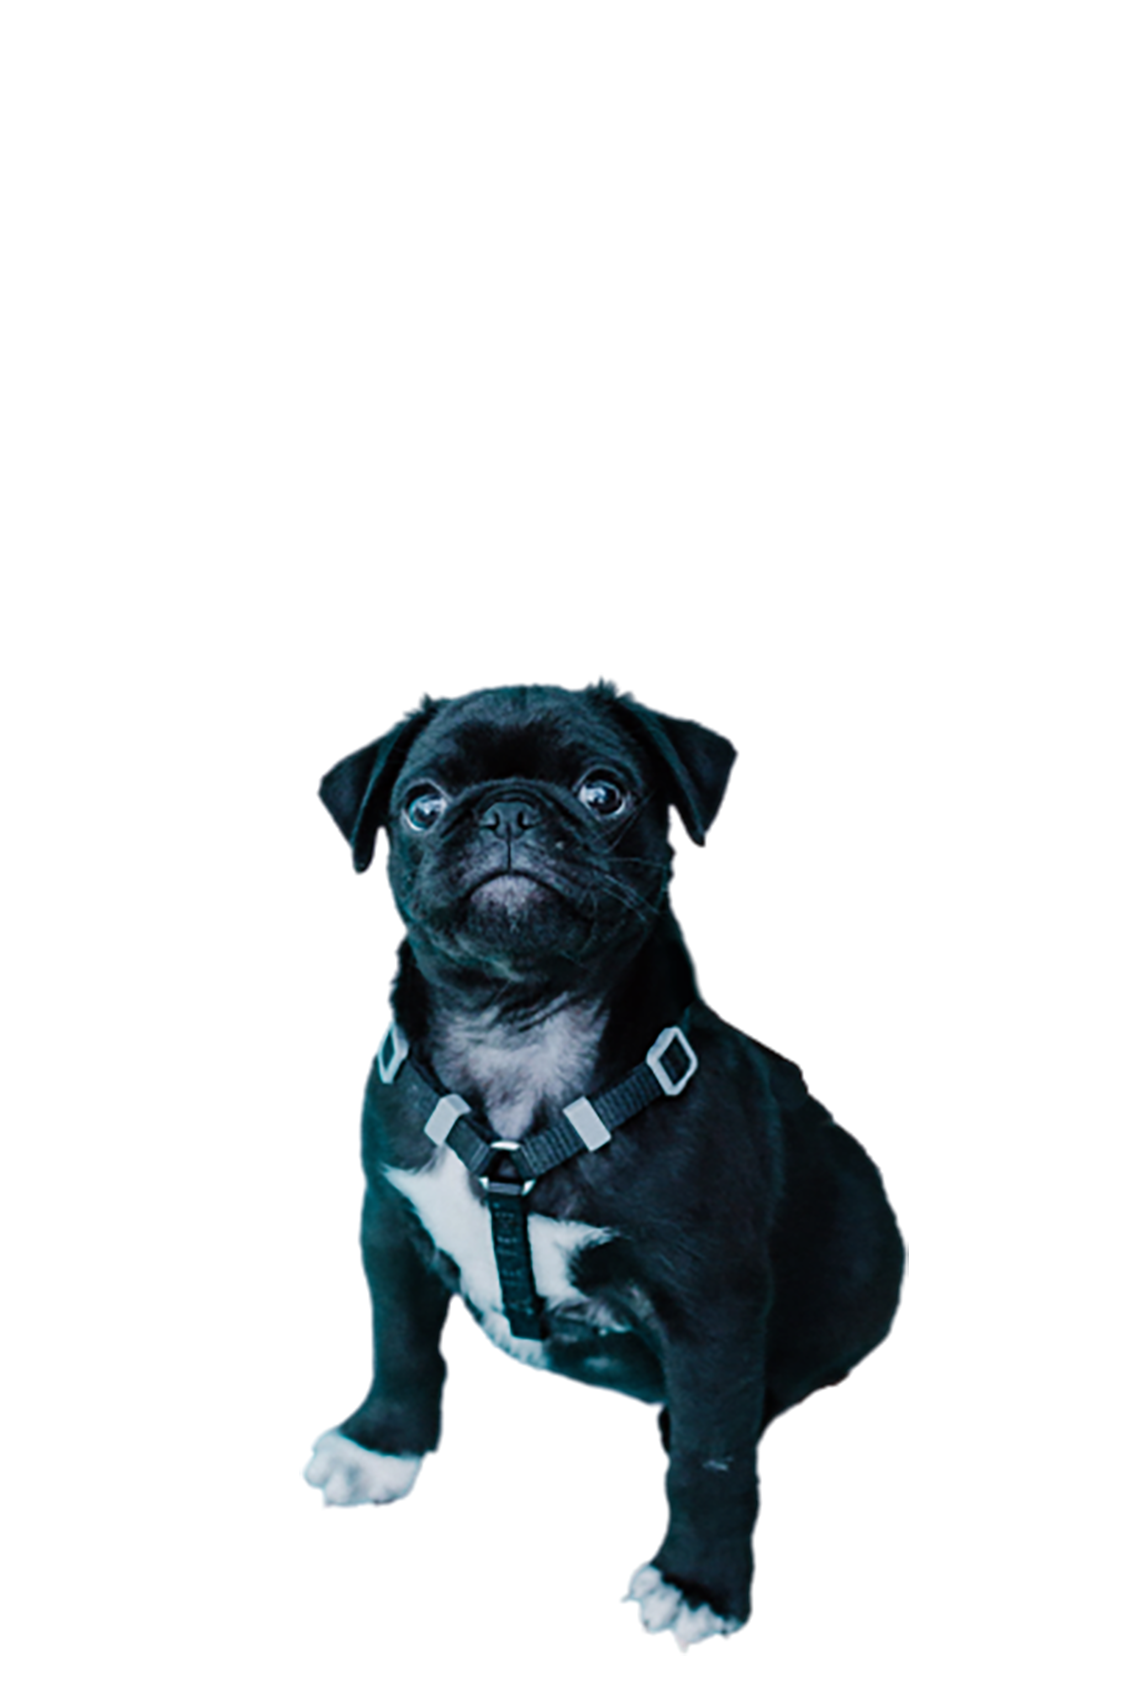 Pug dog looking at its owner transparent background PNG